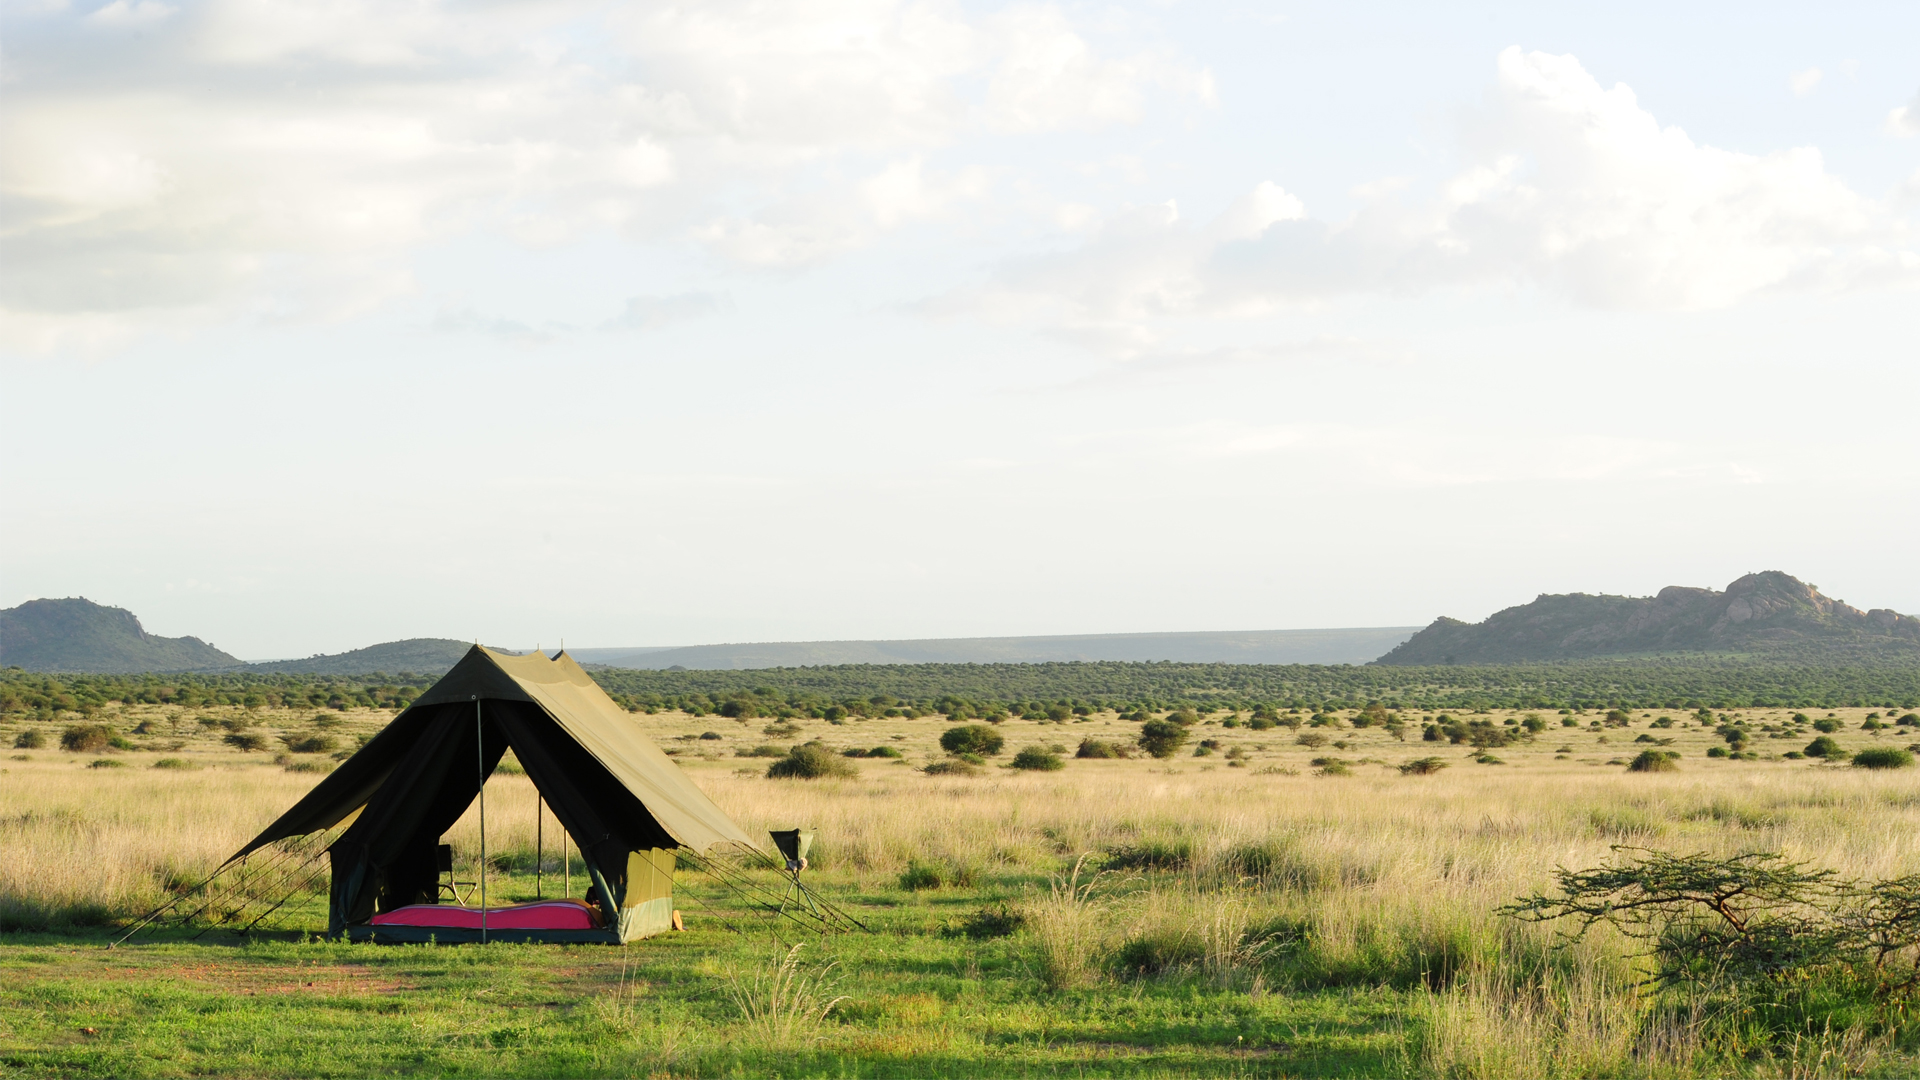 All About Safaris Accommodation adventure luxury mobile karisia luxury tent view